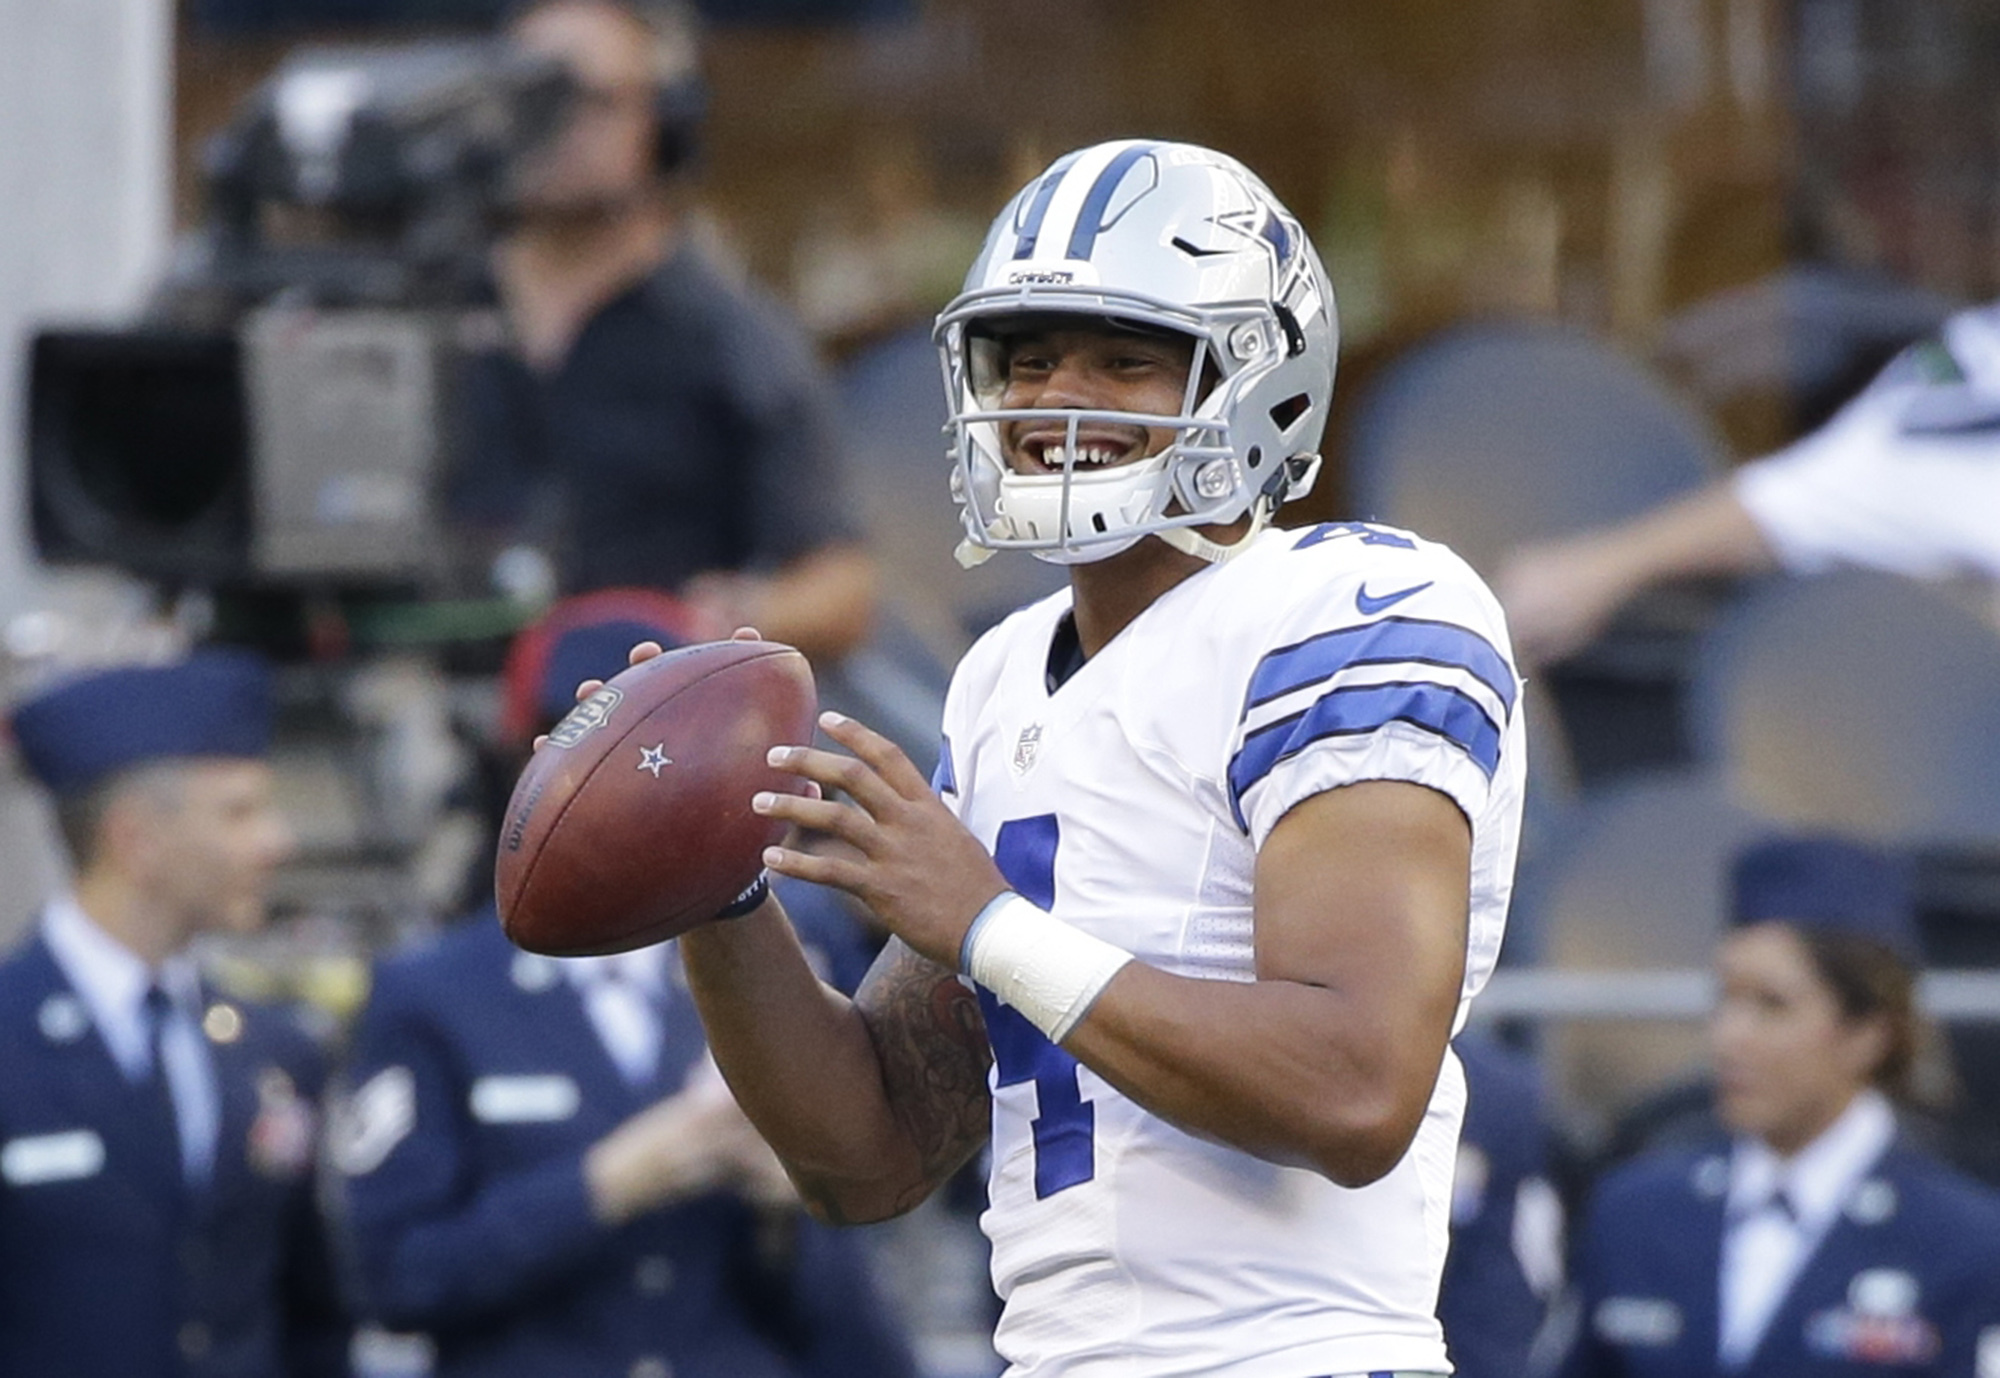 FILE - In this Aug. 25, 2016, file photo, Dallas Cowboys quarterback Dak Prescott passes during warmups before a preseason NFL football game against the Seattle Seahawks, in Seattle. The Cowboys are Prescott's team while Romo is out with a back injury.(AP